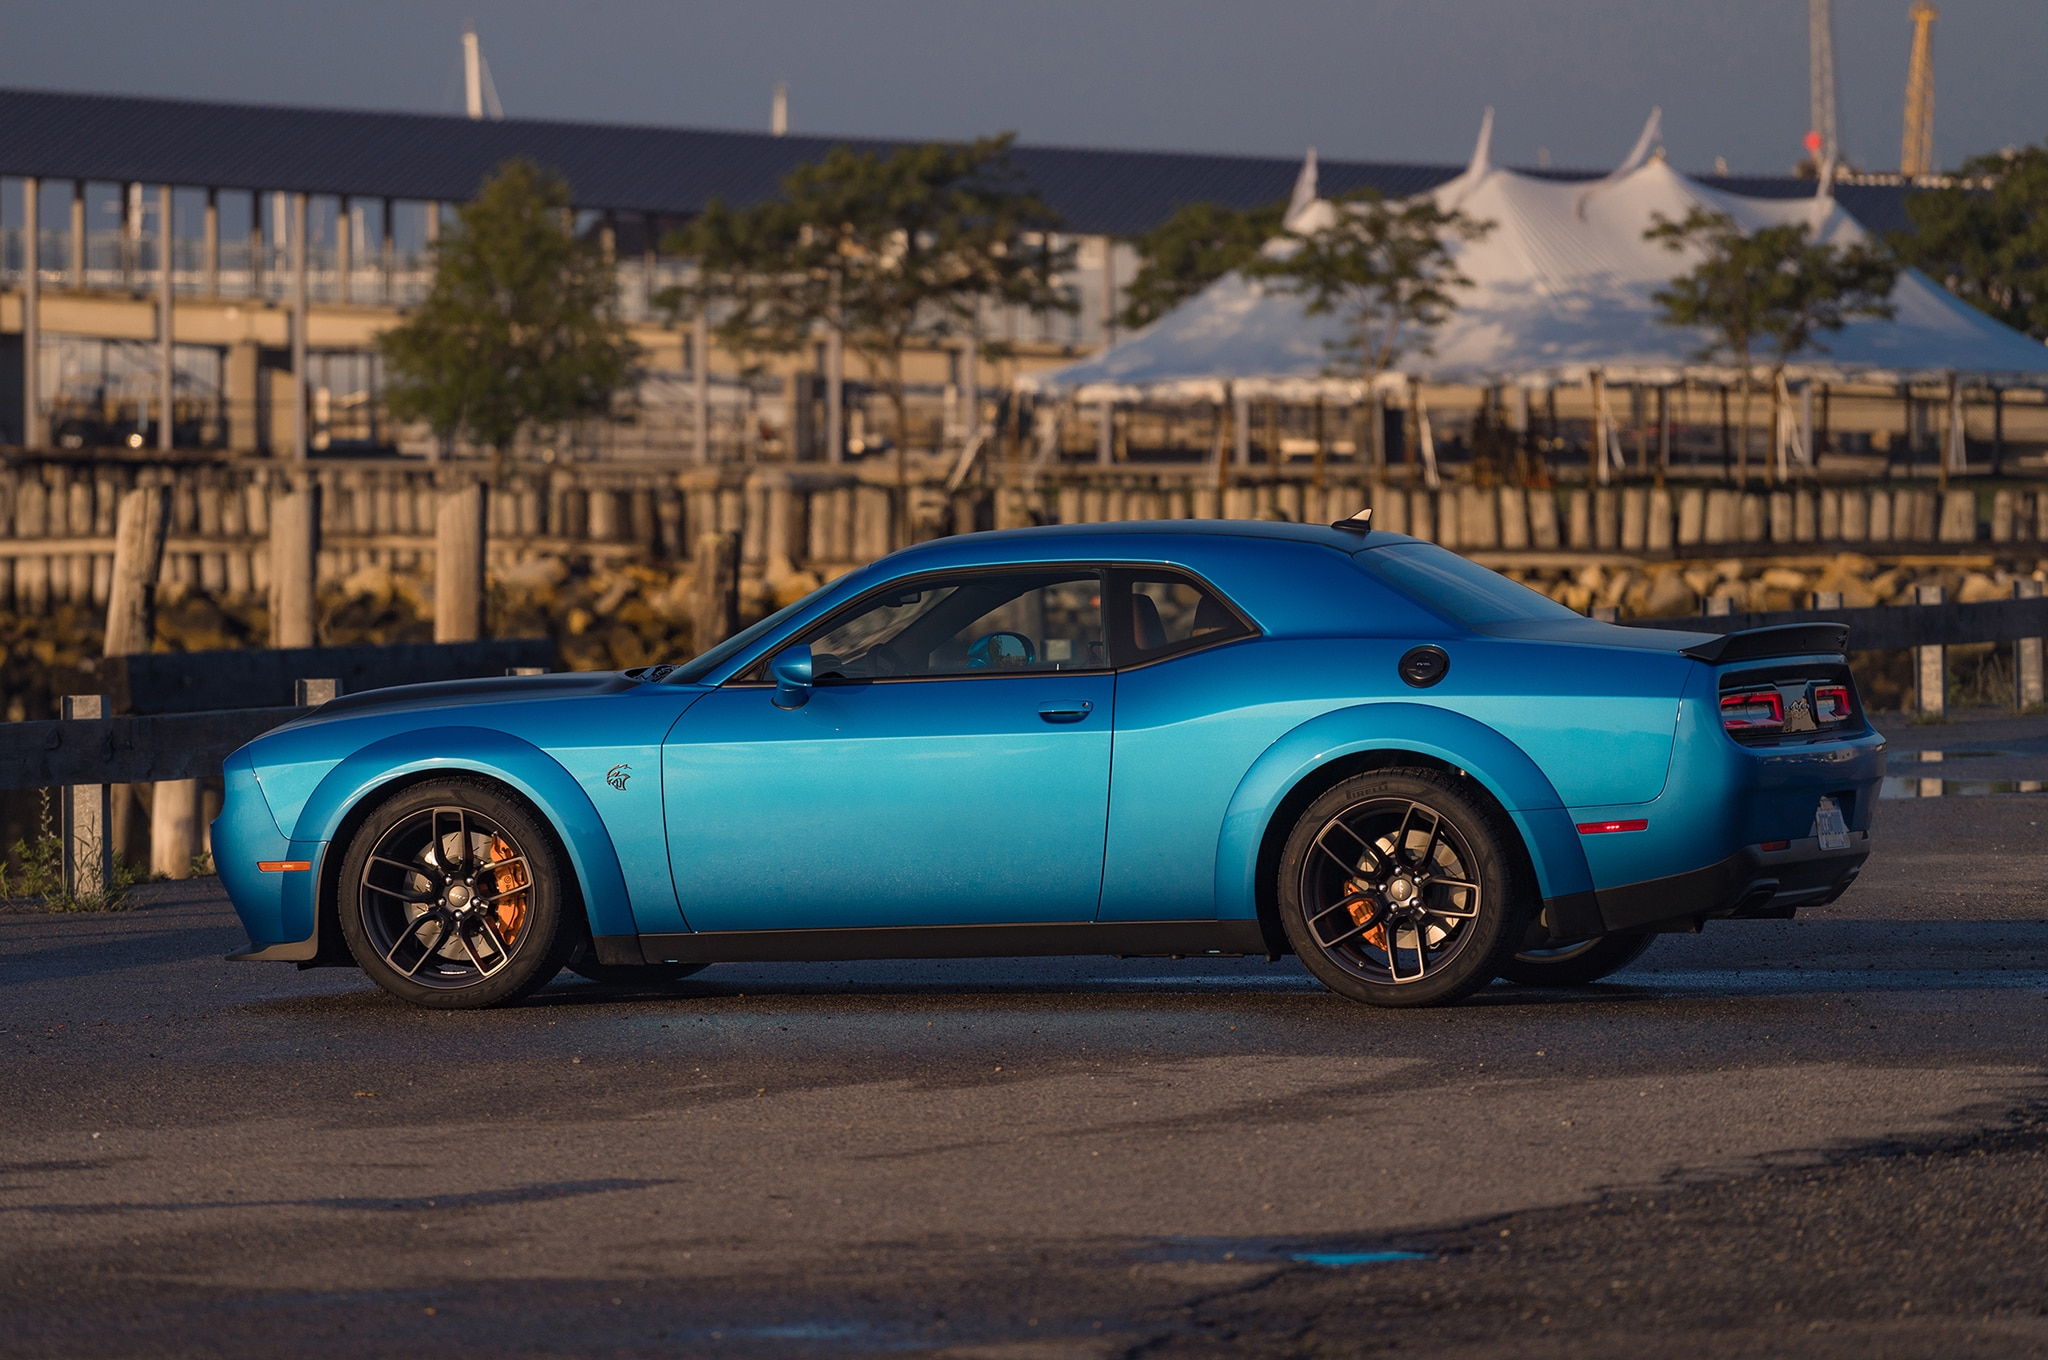 First Drive: 2019 Dodge Challenger SRT Hellcat Redeye And